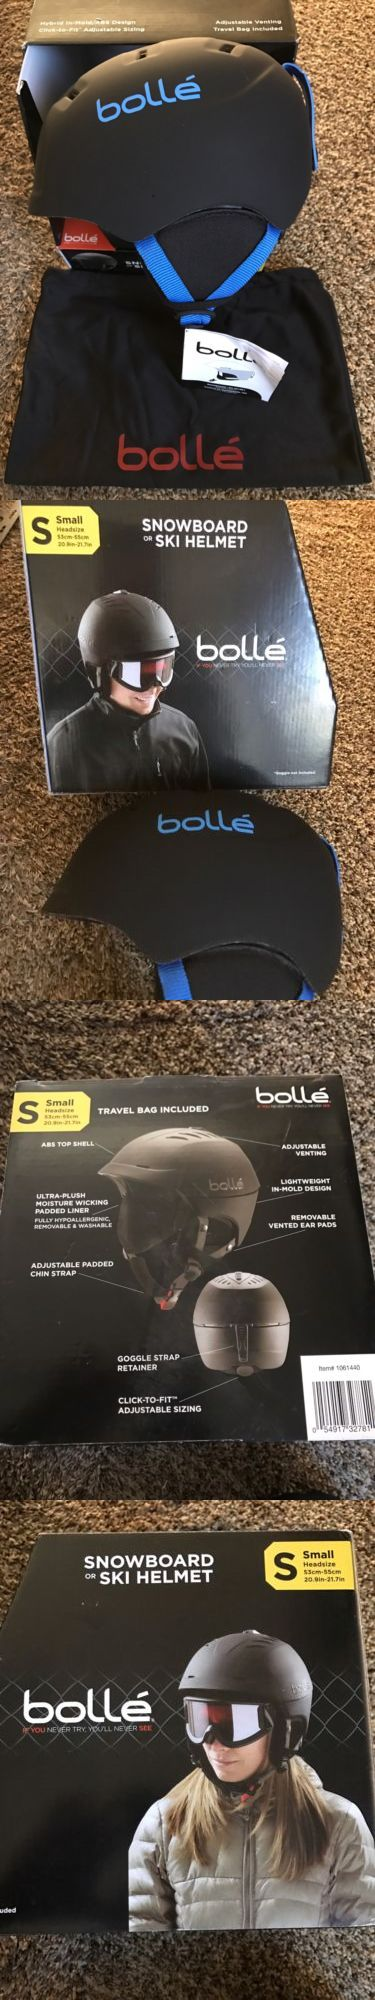 Protective Gear 36260: Bolle Alliance Snowboard Ski Winter Sports Helmet Matte Black Size Small BUY IT NOW ONLY: $41.9